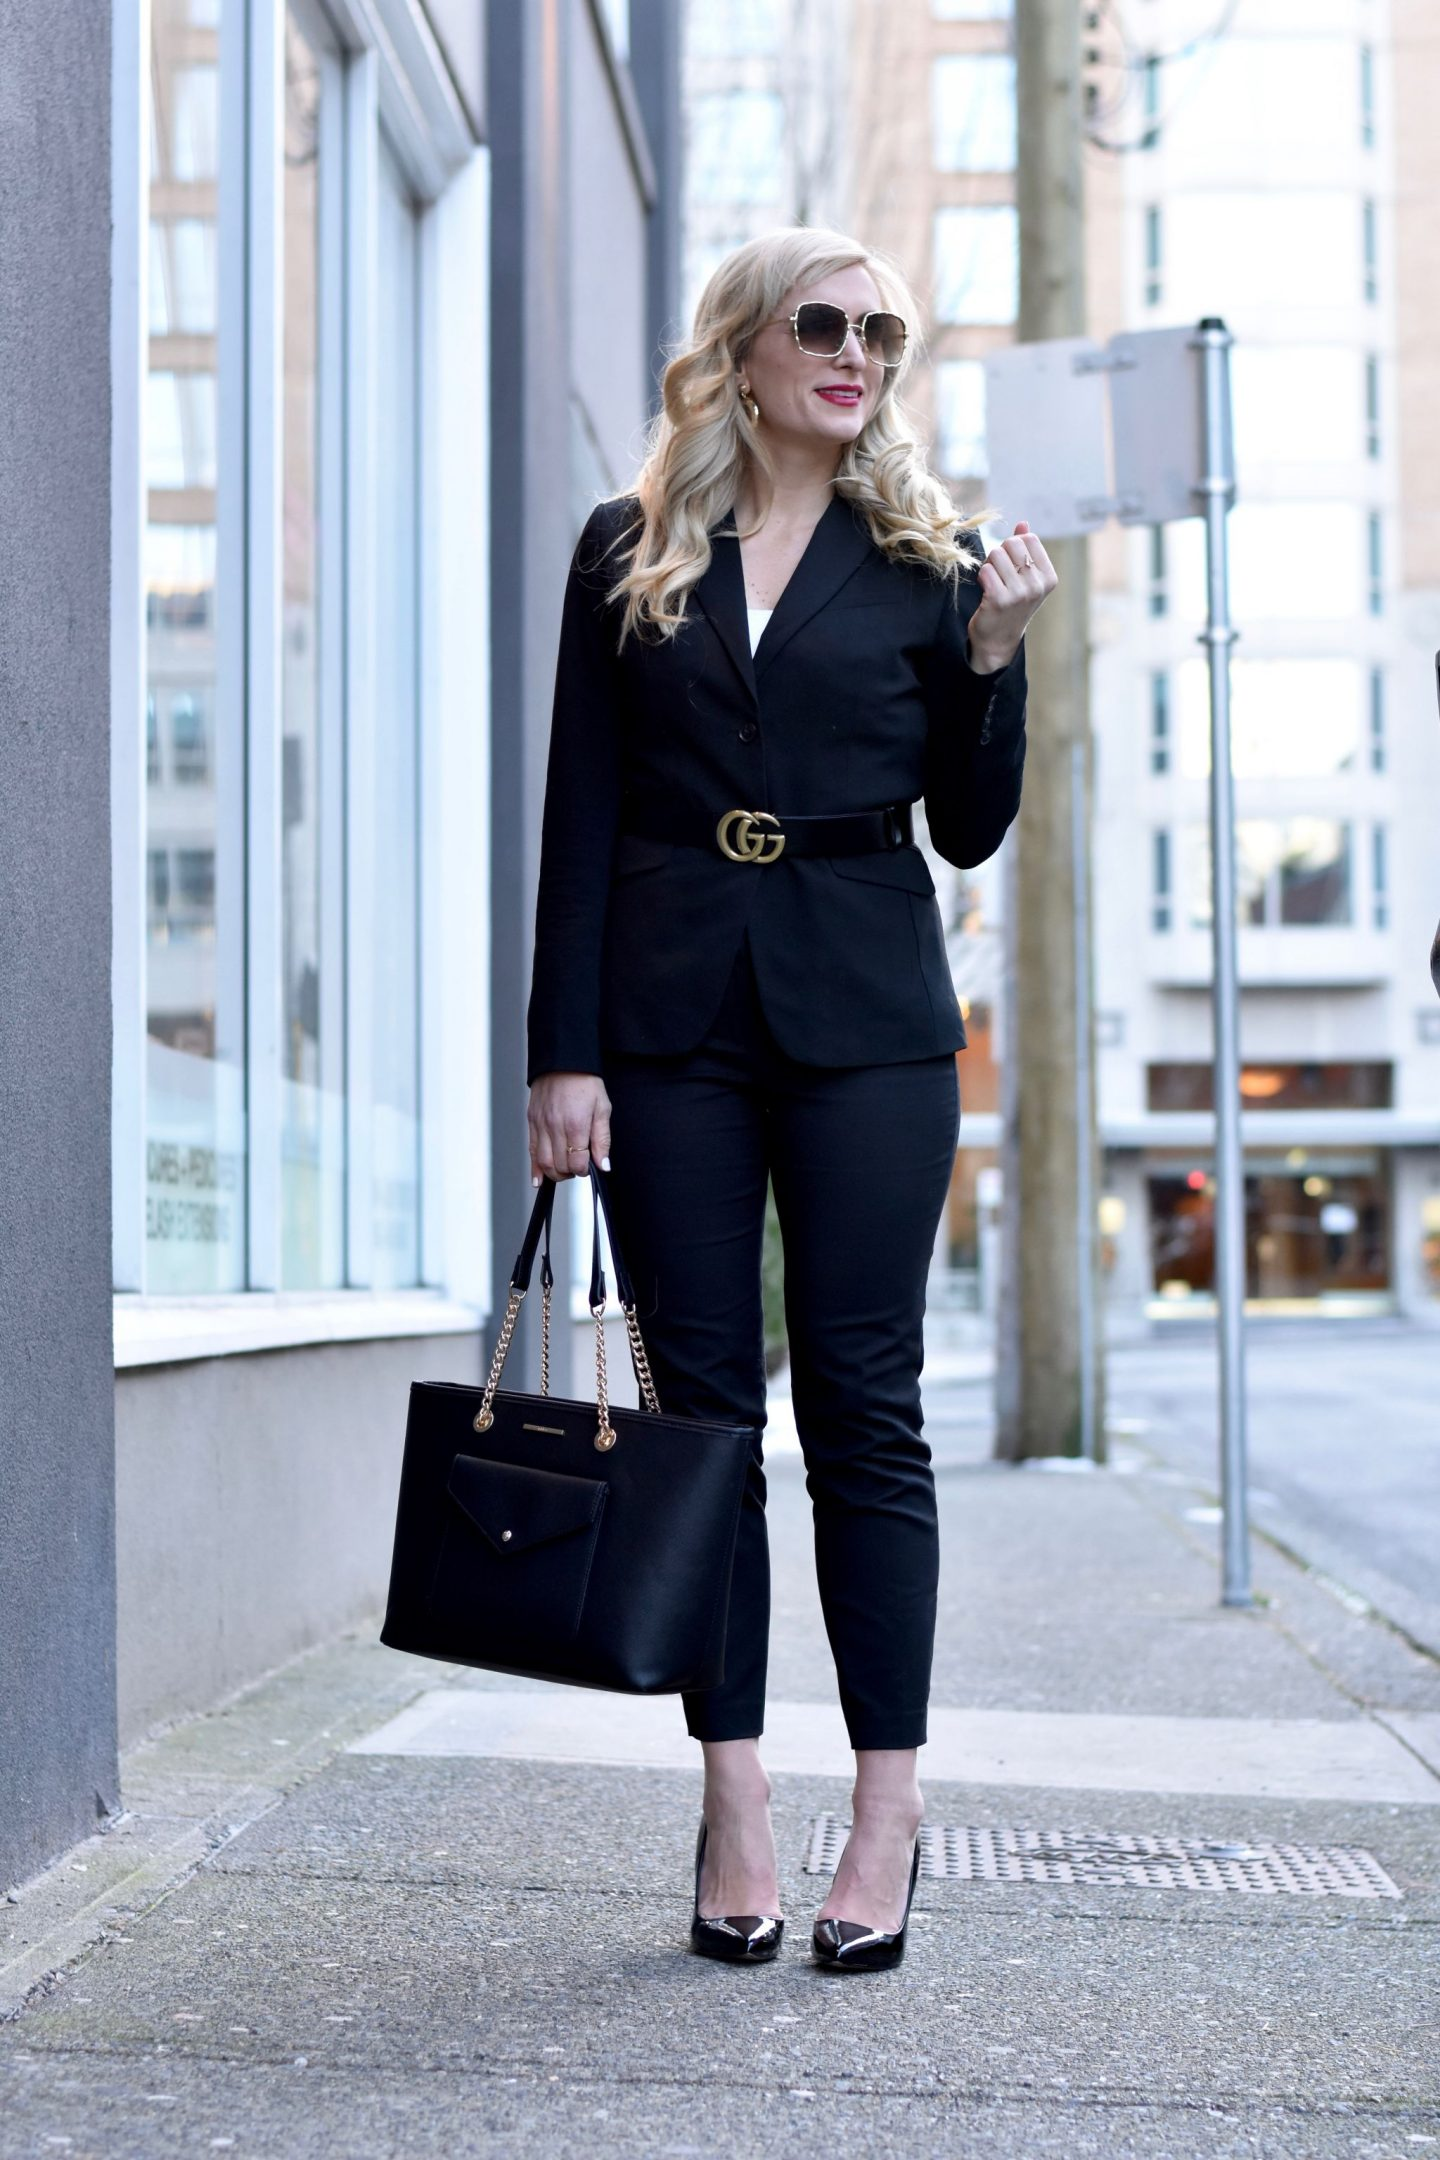 17ec5874a77 The Pant Suit for Young Professional Women